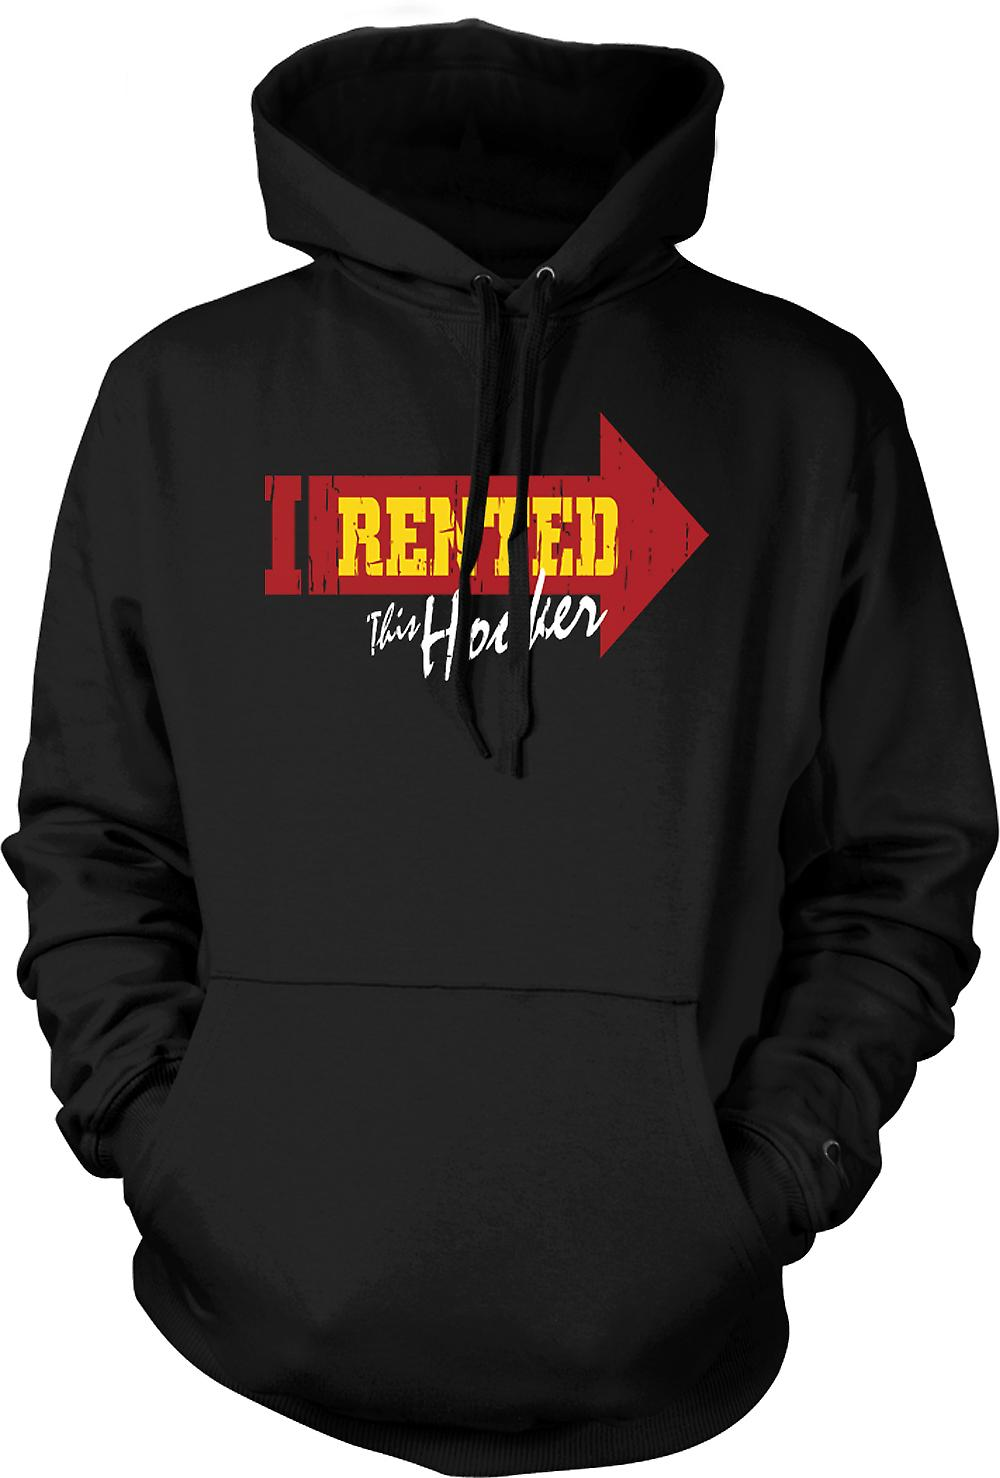 Mens Hoodie - I Rented This Hooker - Funny Joke